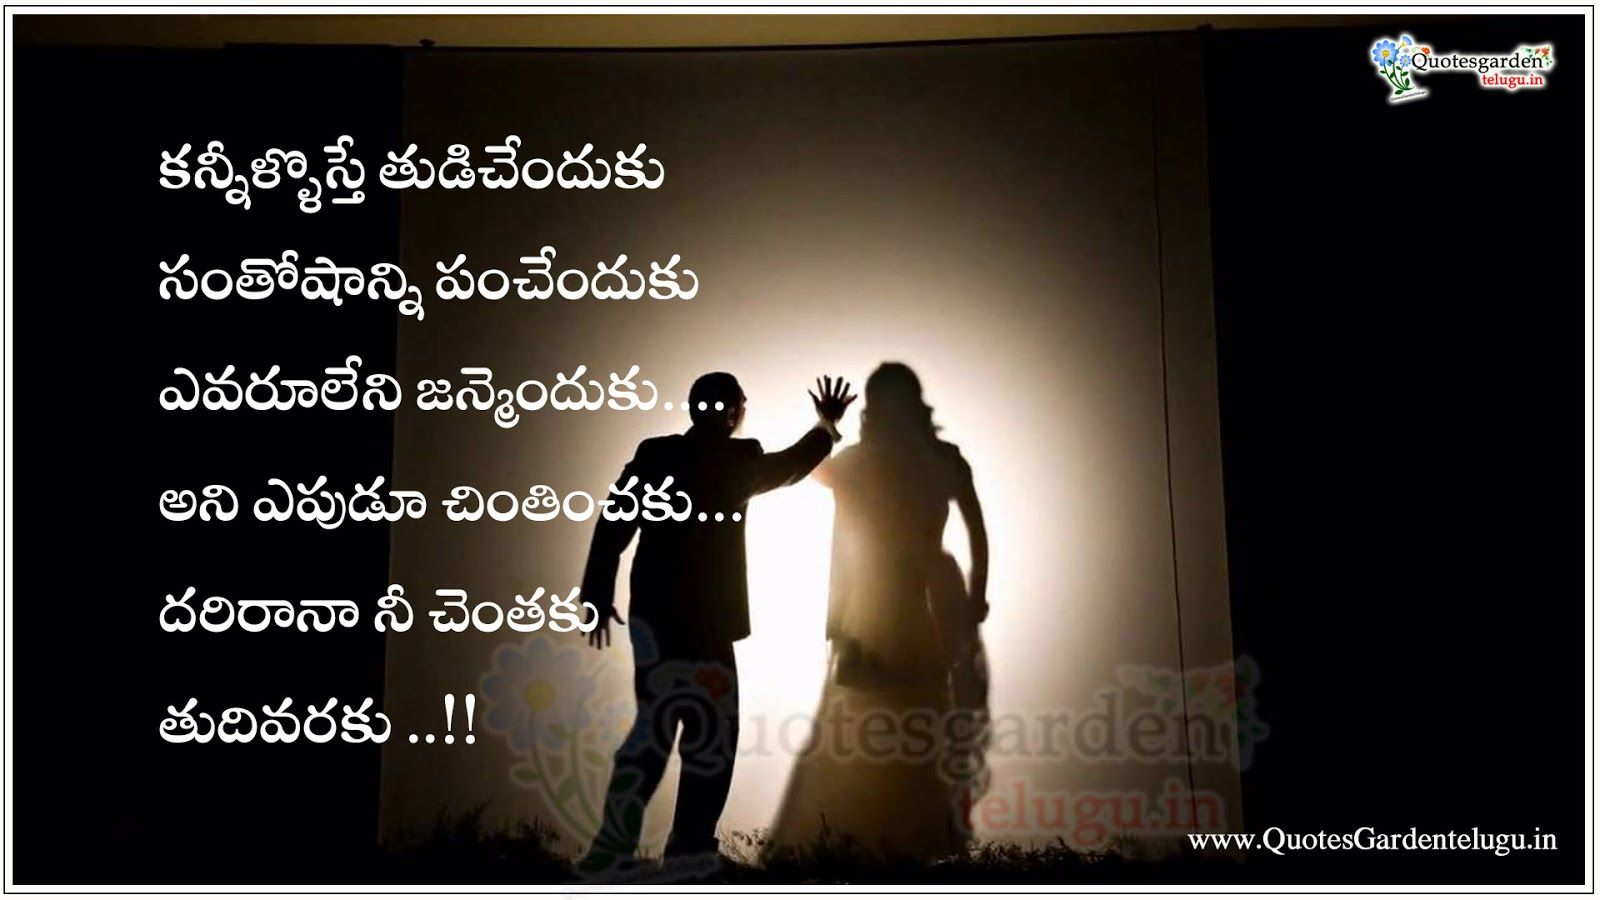 Pin By Mundlapudi Jyothi On Gallary Love Quotes Quotes Love